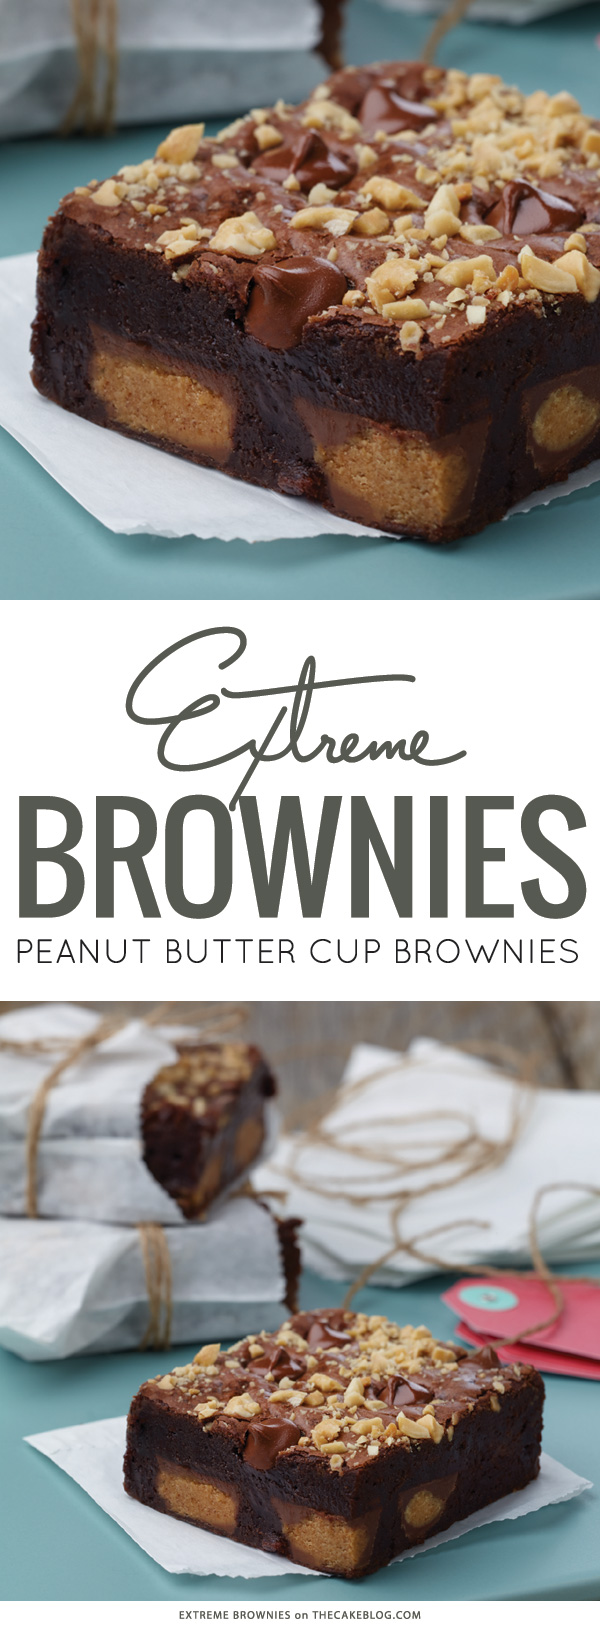 Extreme Peanut Butter Cup Brownies   by Connie Weis on TheCakeBlog.com